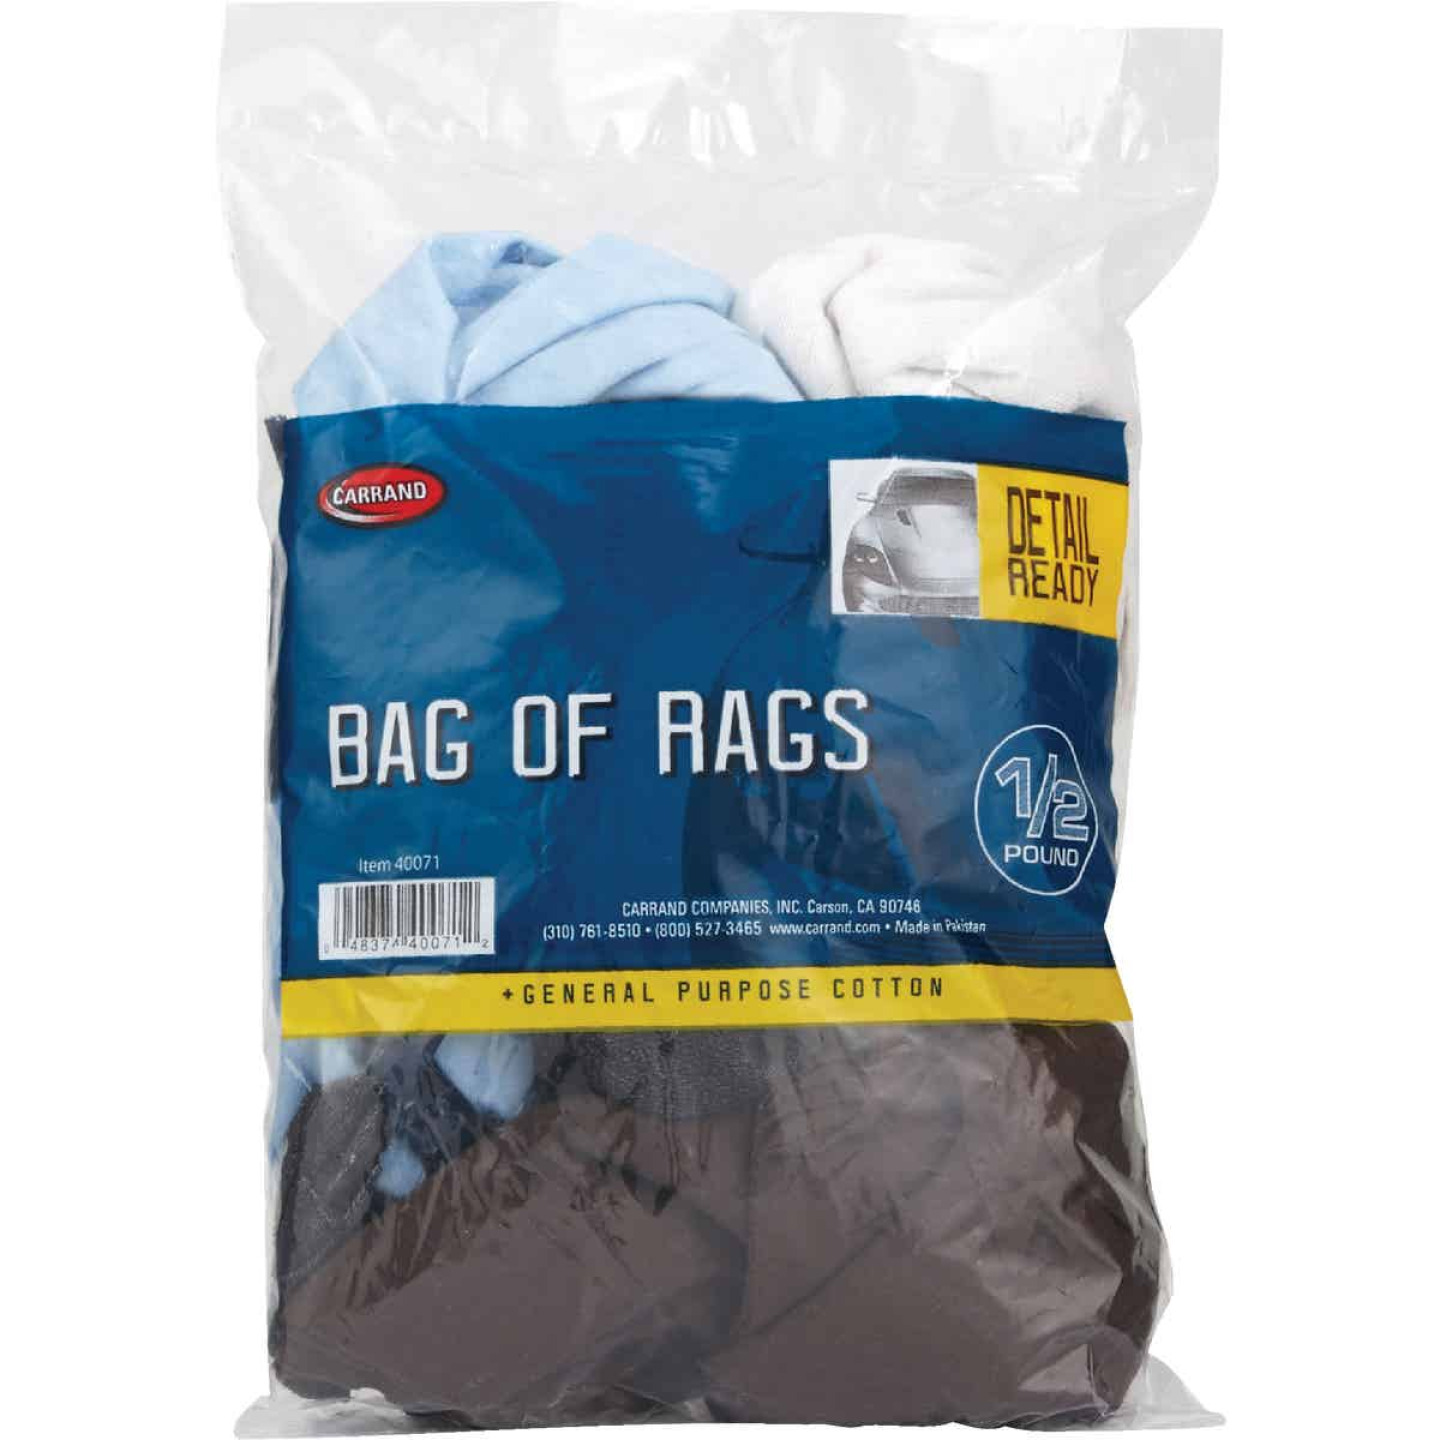 Carrand 1/2 Lb. Cleaning Rag Image 2